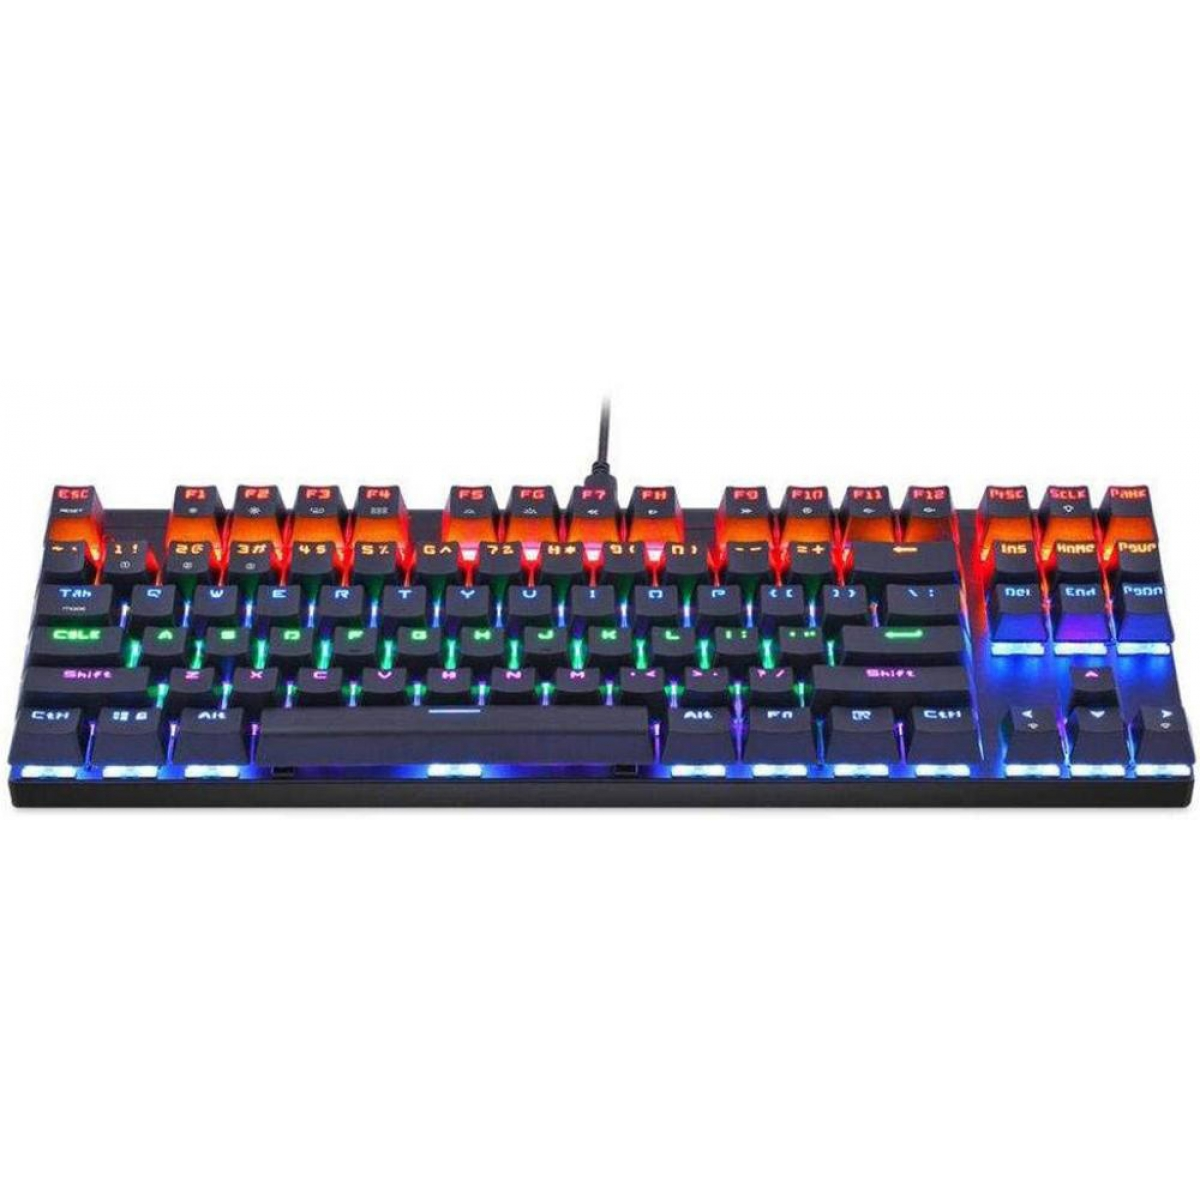 Teclado Mecânico Gamer MotoSpeed K83 Rainbow, Switch Outemu Blue, FMSTC0013PTO